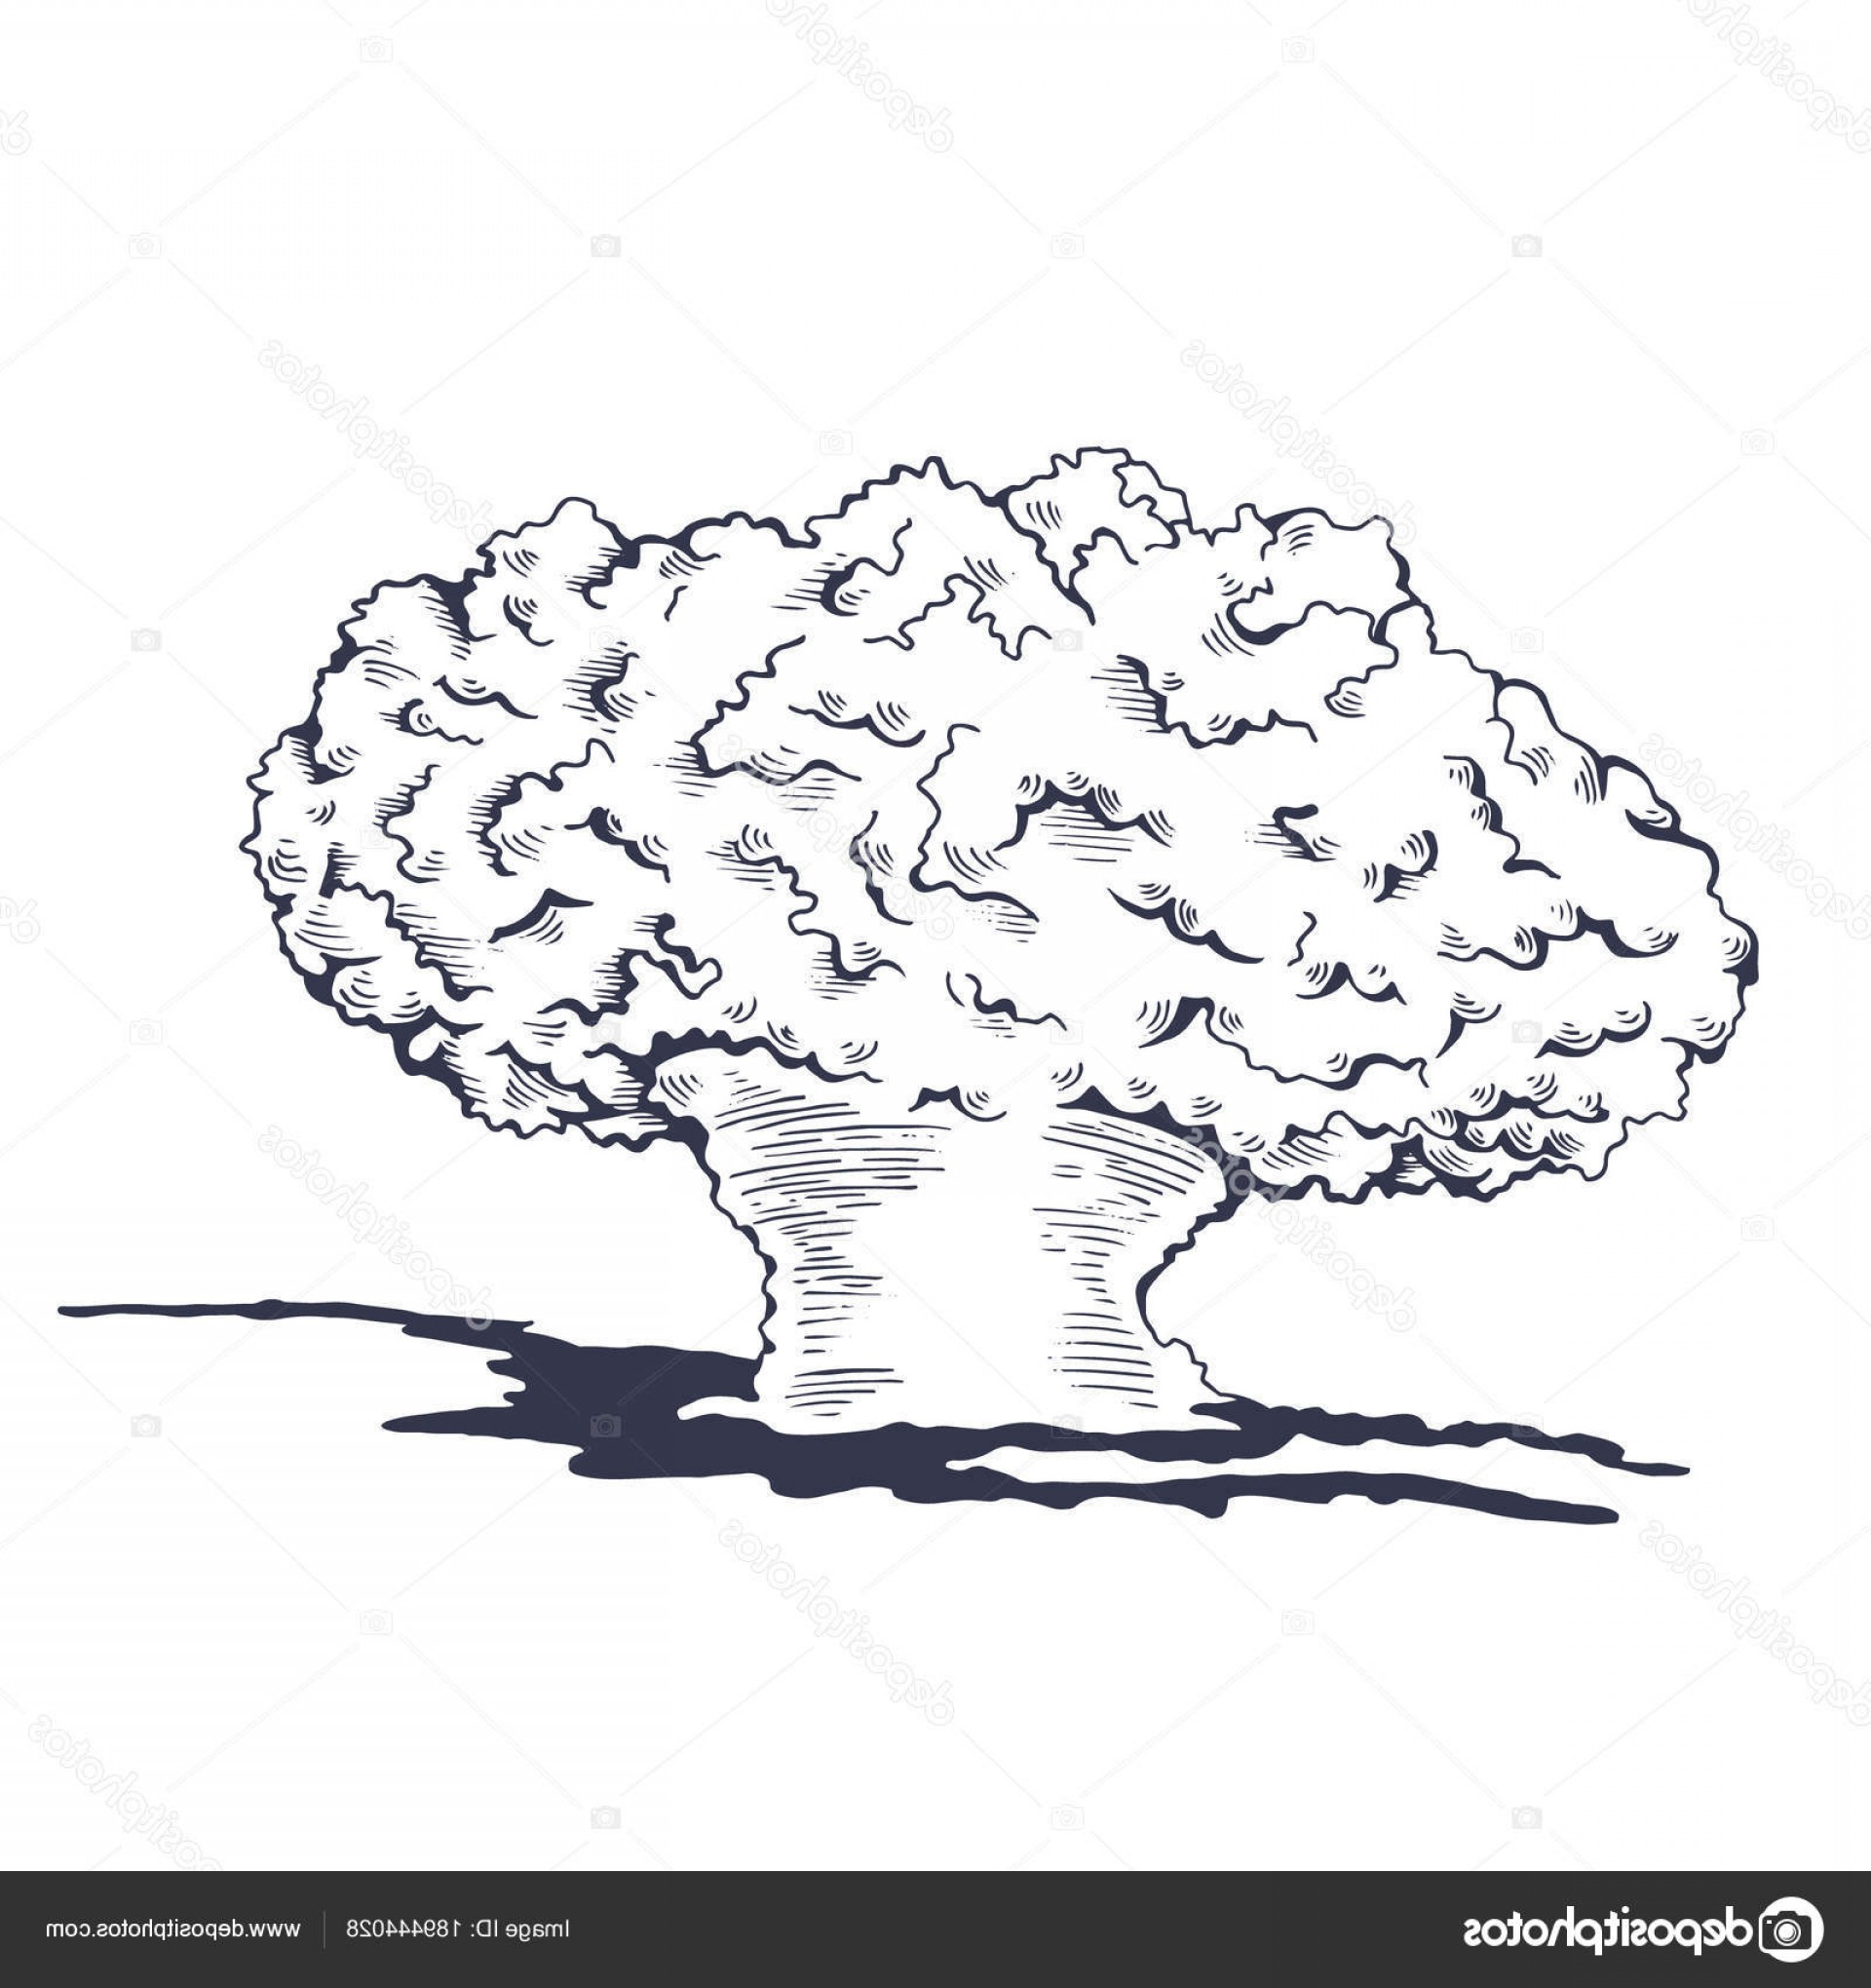 Atomic Vector Coud: Stock Illustration Mushroom Cloud From The Atomic